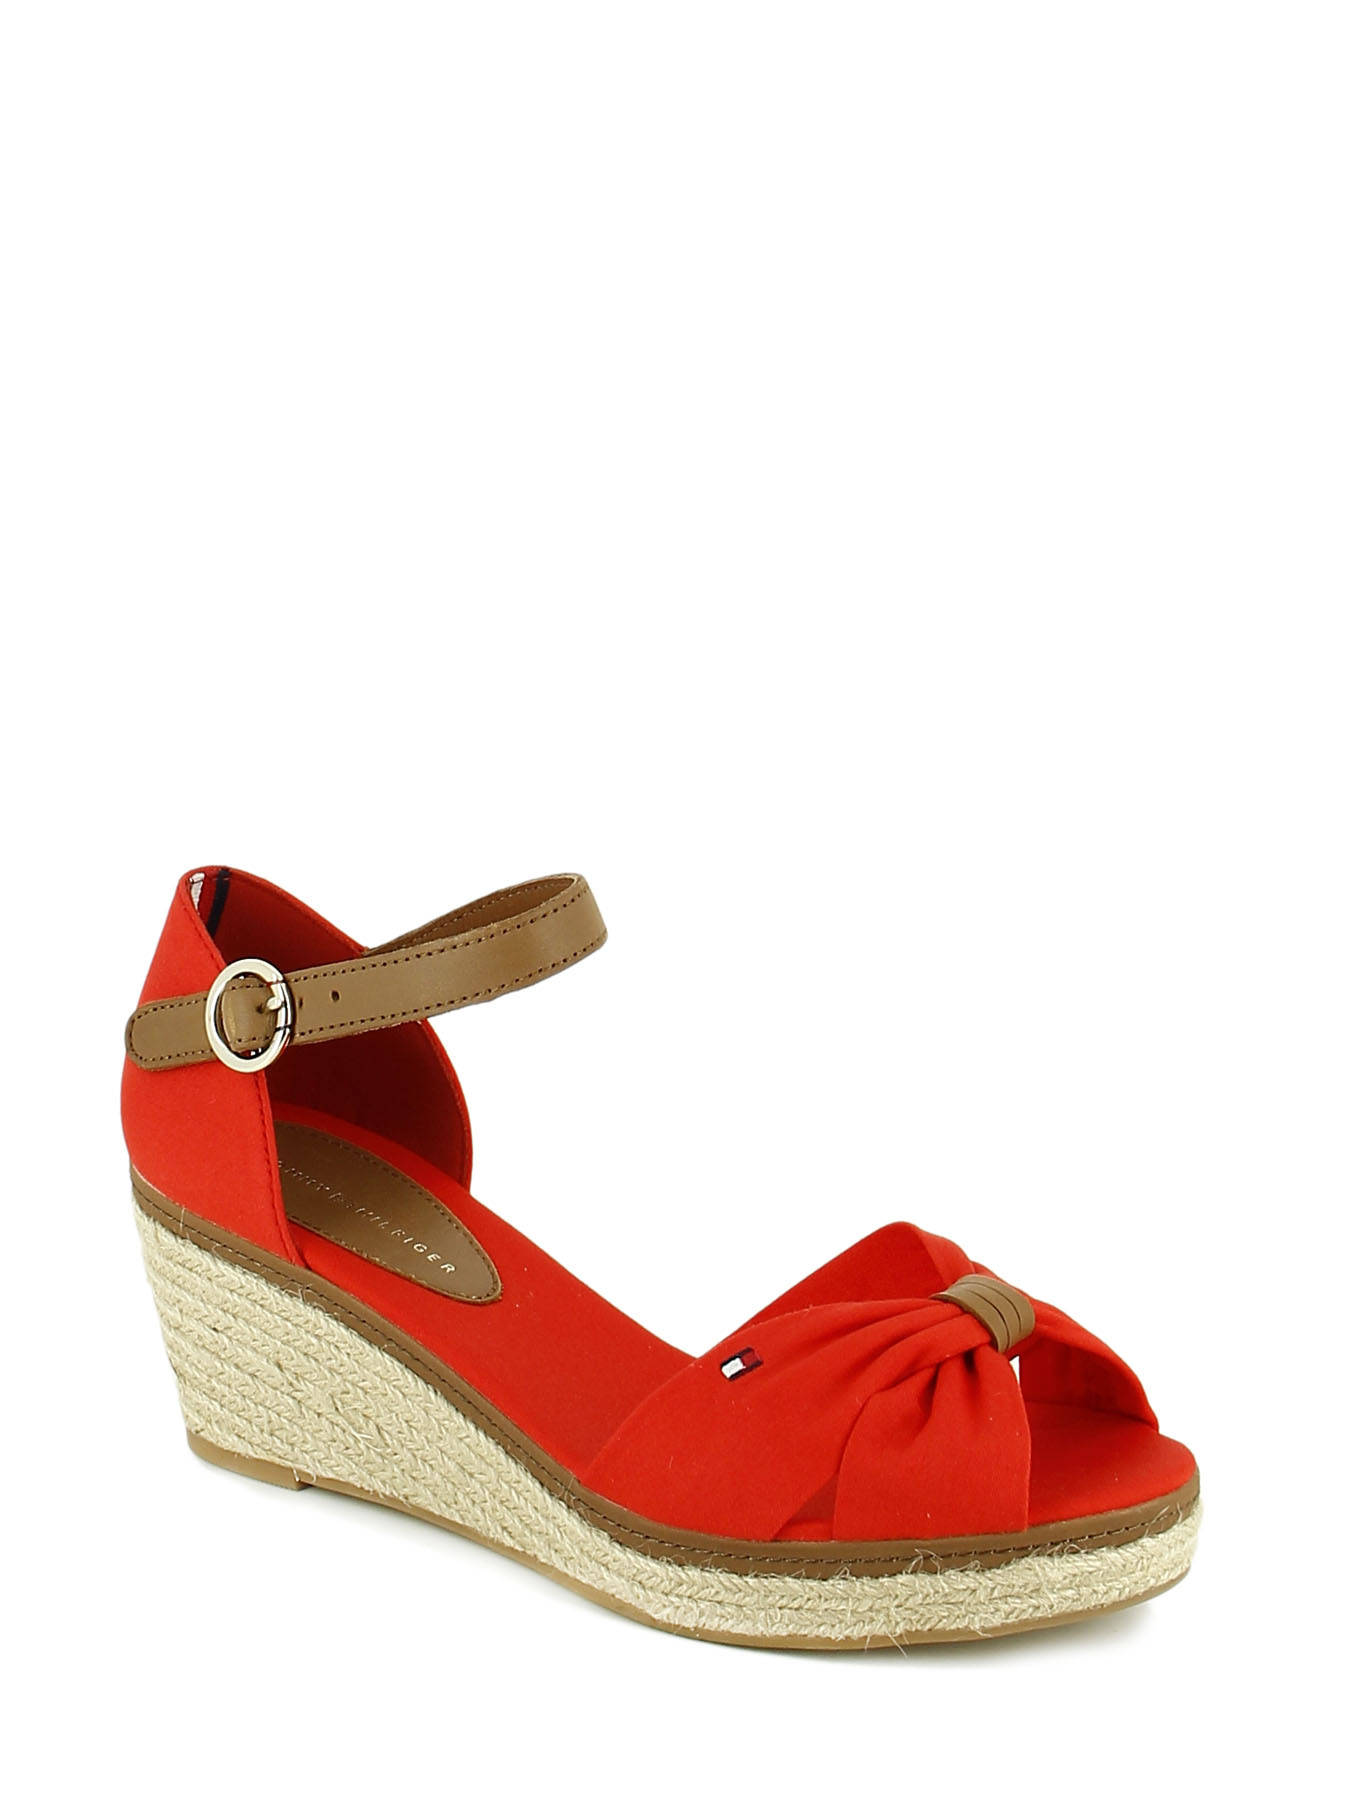 ... Sandals Wedge Heel Tommy hilfiger Red sandales / nu-pieds ELBA40D ...